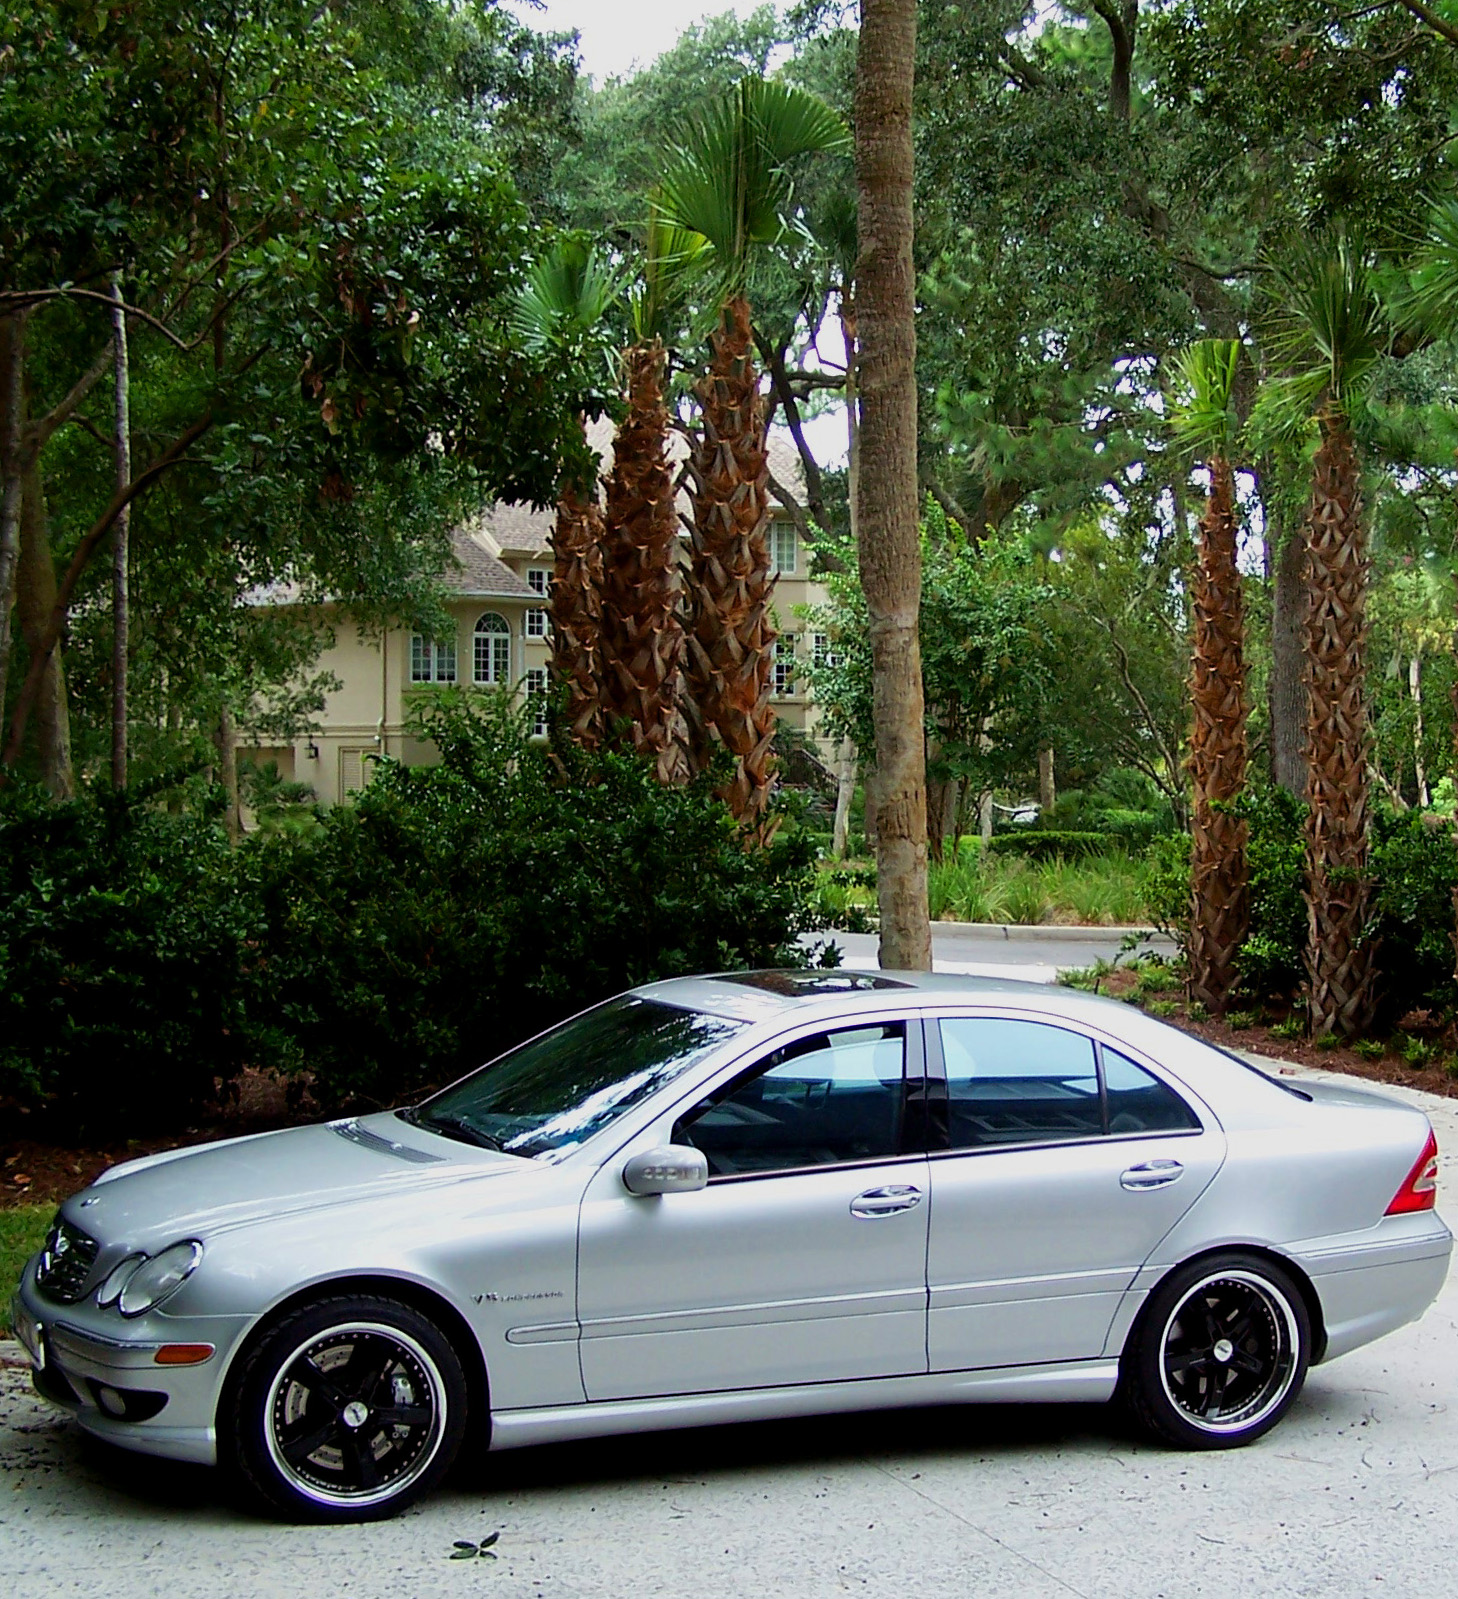 2003 mercedes benz c32 amg 1 8 mile drag racing timeslip 0